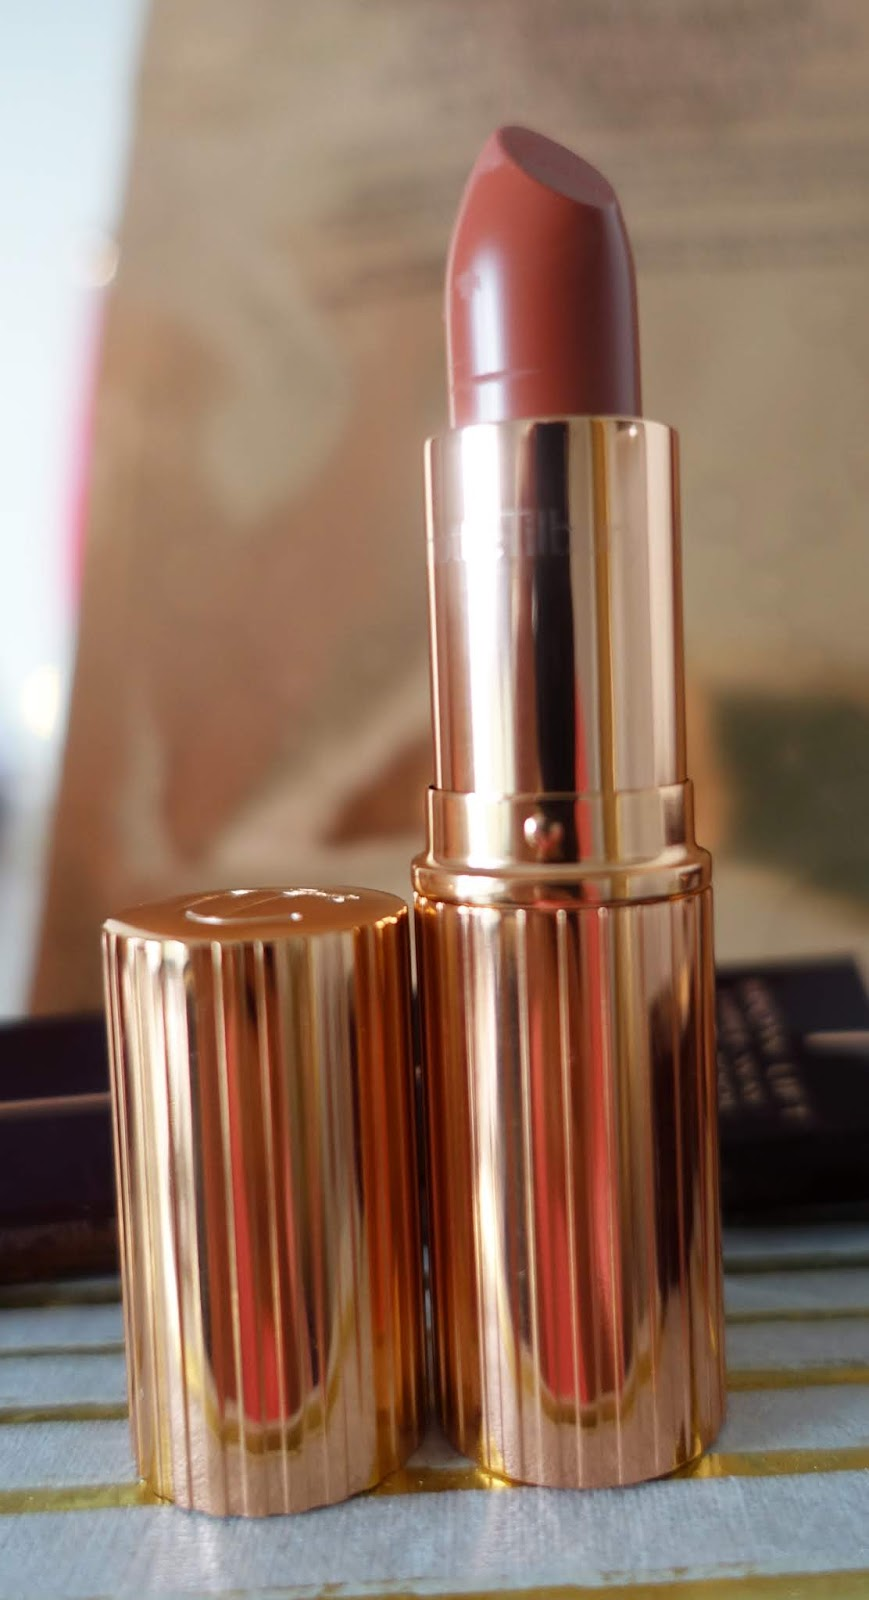 The lipstick used buy Charlotte Tilbury to create her Golden Goddess look, Stoned Rose,